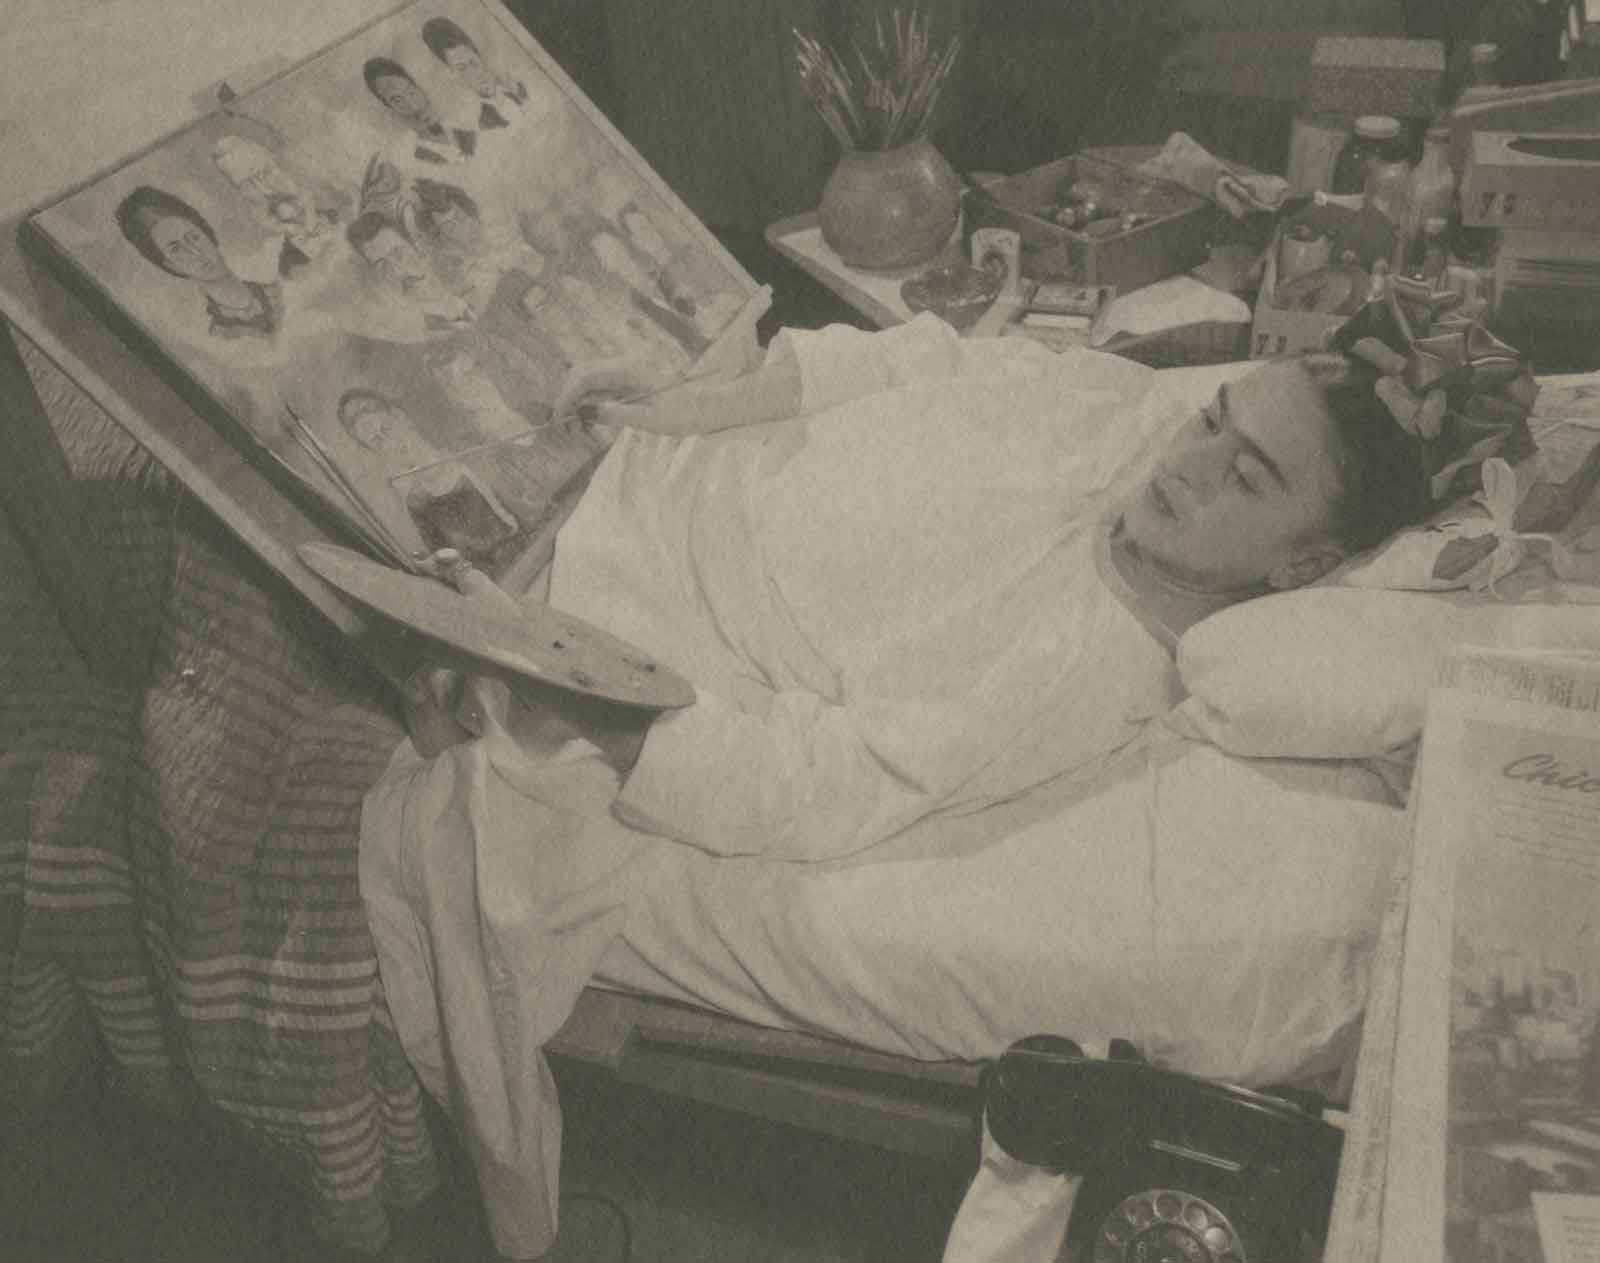 Juan Guzman, Mexican (Cologne, Germany, 1911 – 1982, Mexico City, Mexico),  Frida in Hospital, Painting,  circa 1930s, platinum print, printed by Ava Vargas, 3 ¾ x 4 ¾ inches. Courtesy of Throckmorton Fine Art, New York, New York.